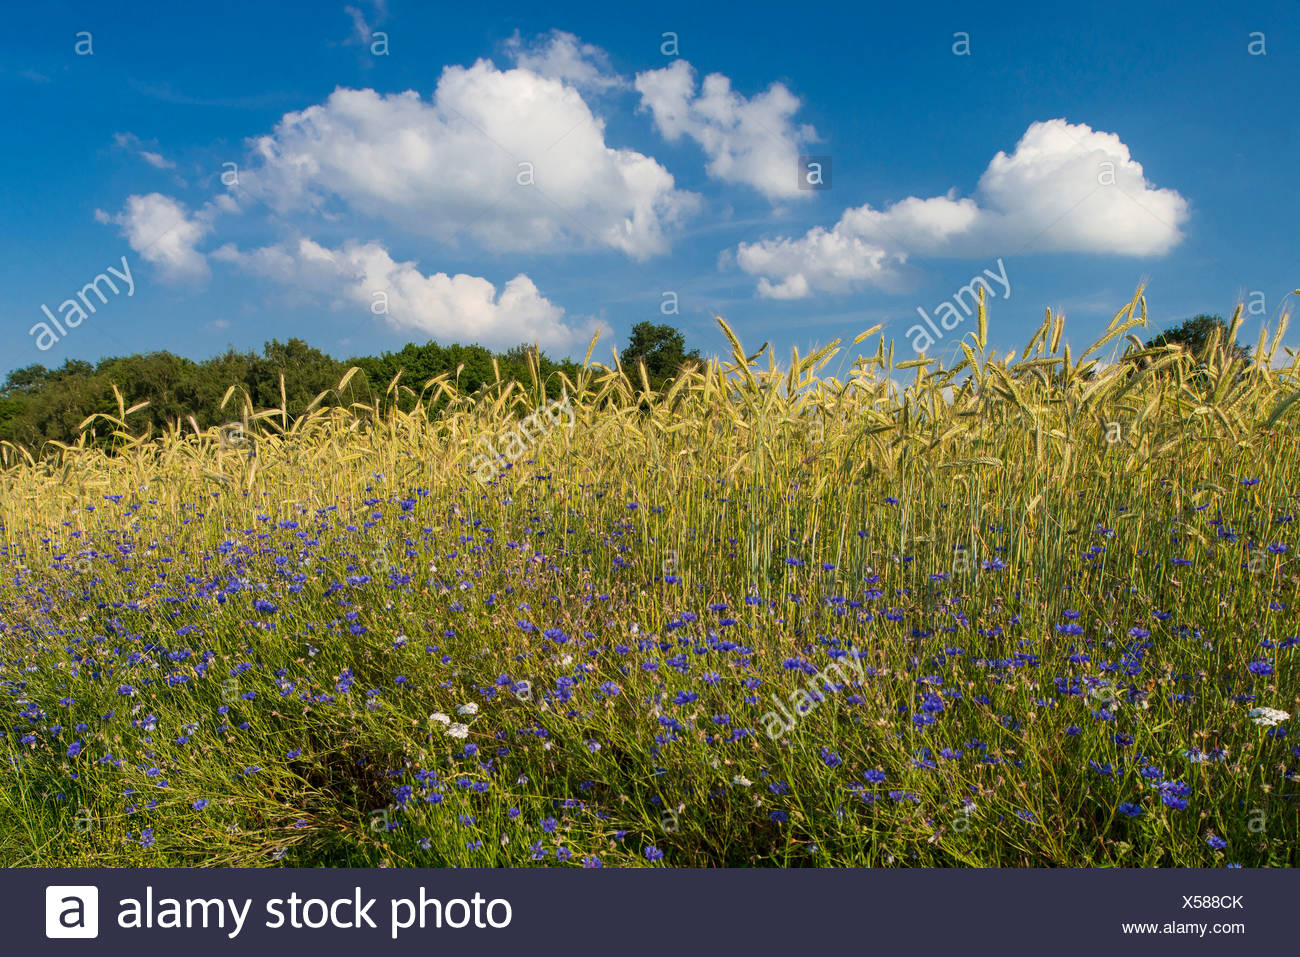 cornflowers at the edge of a grainfield, centaurea cyanus, niedersachsen, germany Stock Photo